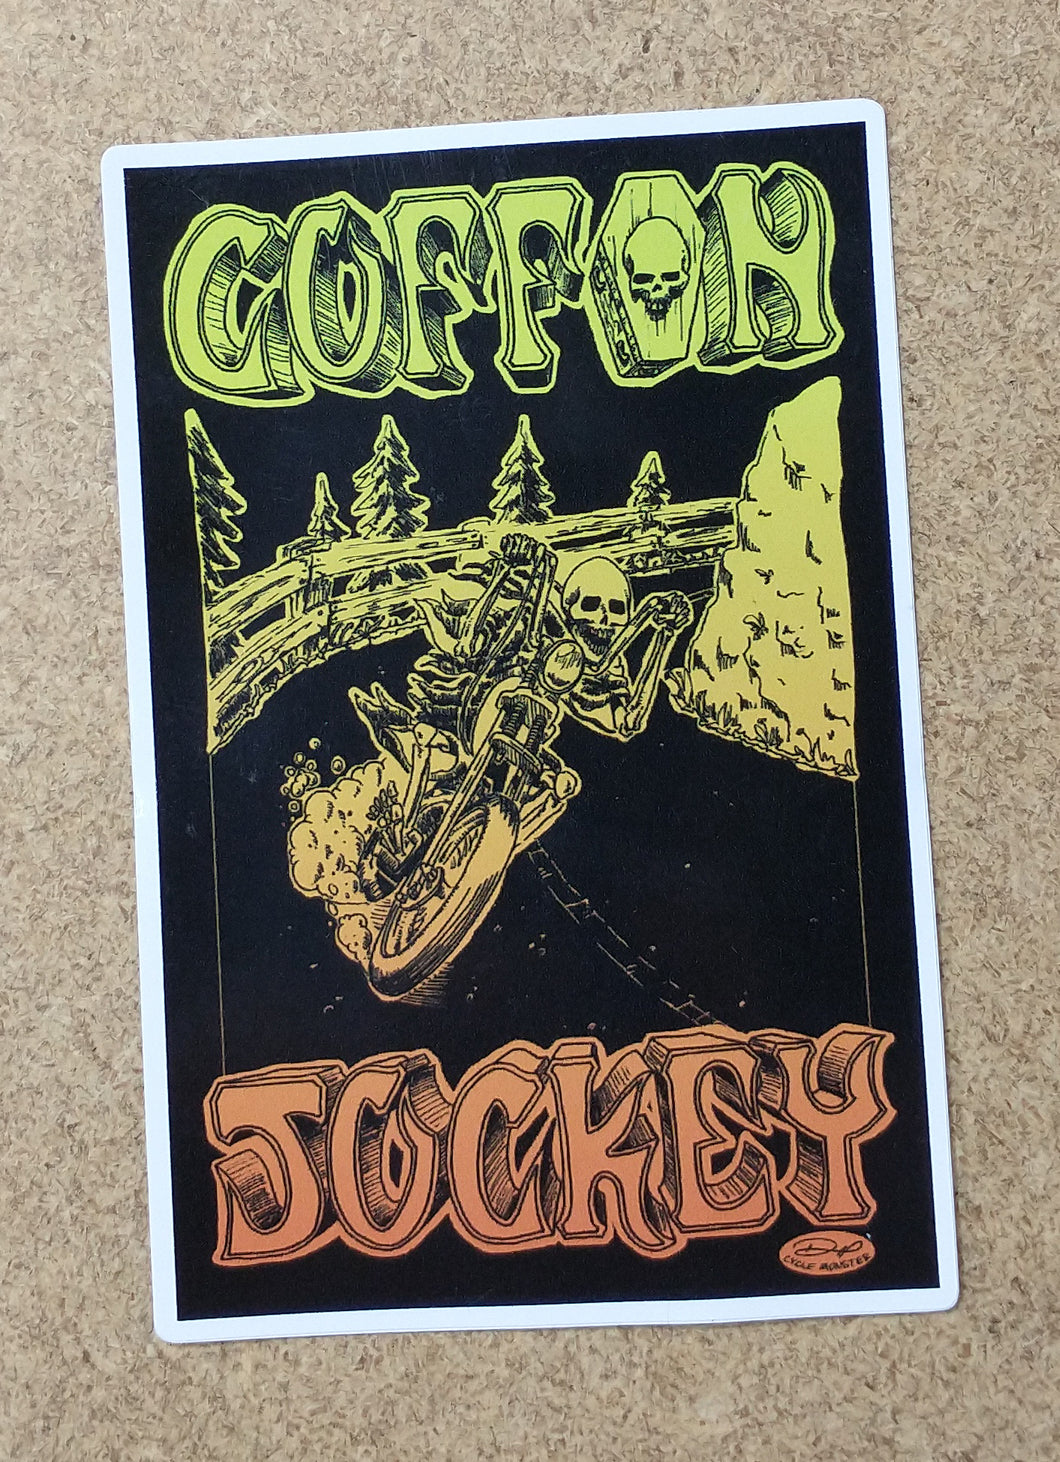 COFFIN JOCKEY decal (color)